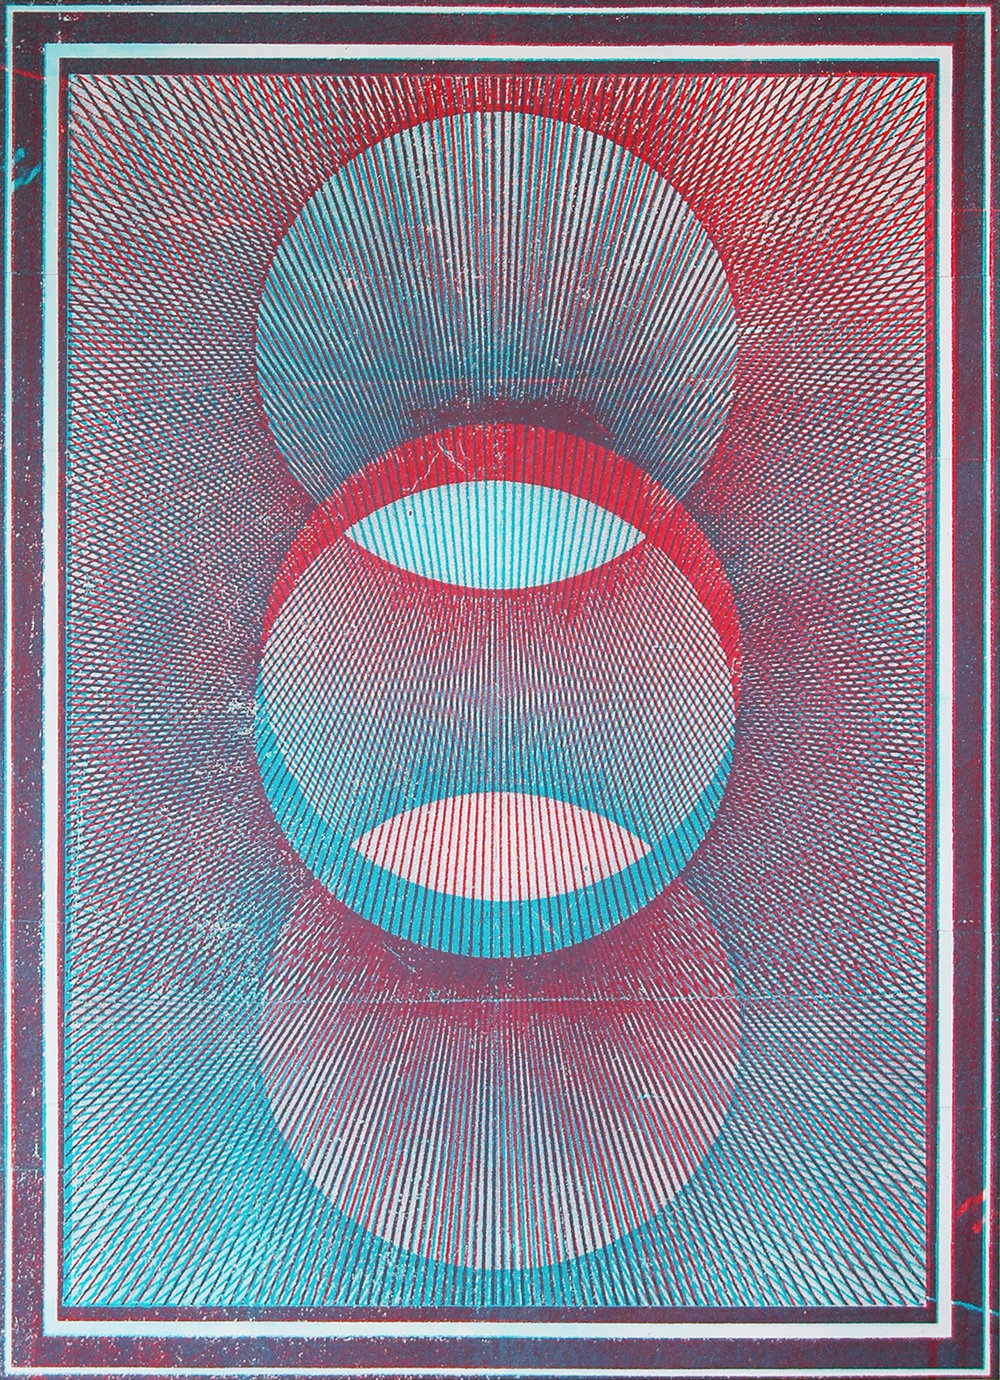 "GWENAËL RATTKE   Projections II (red & blue) , 2012, acrylic silkscreen on canvas with hand working, 49"" x 35.5"""